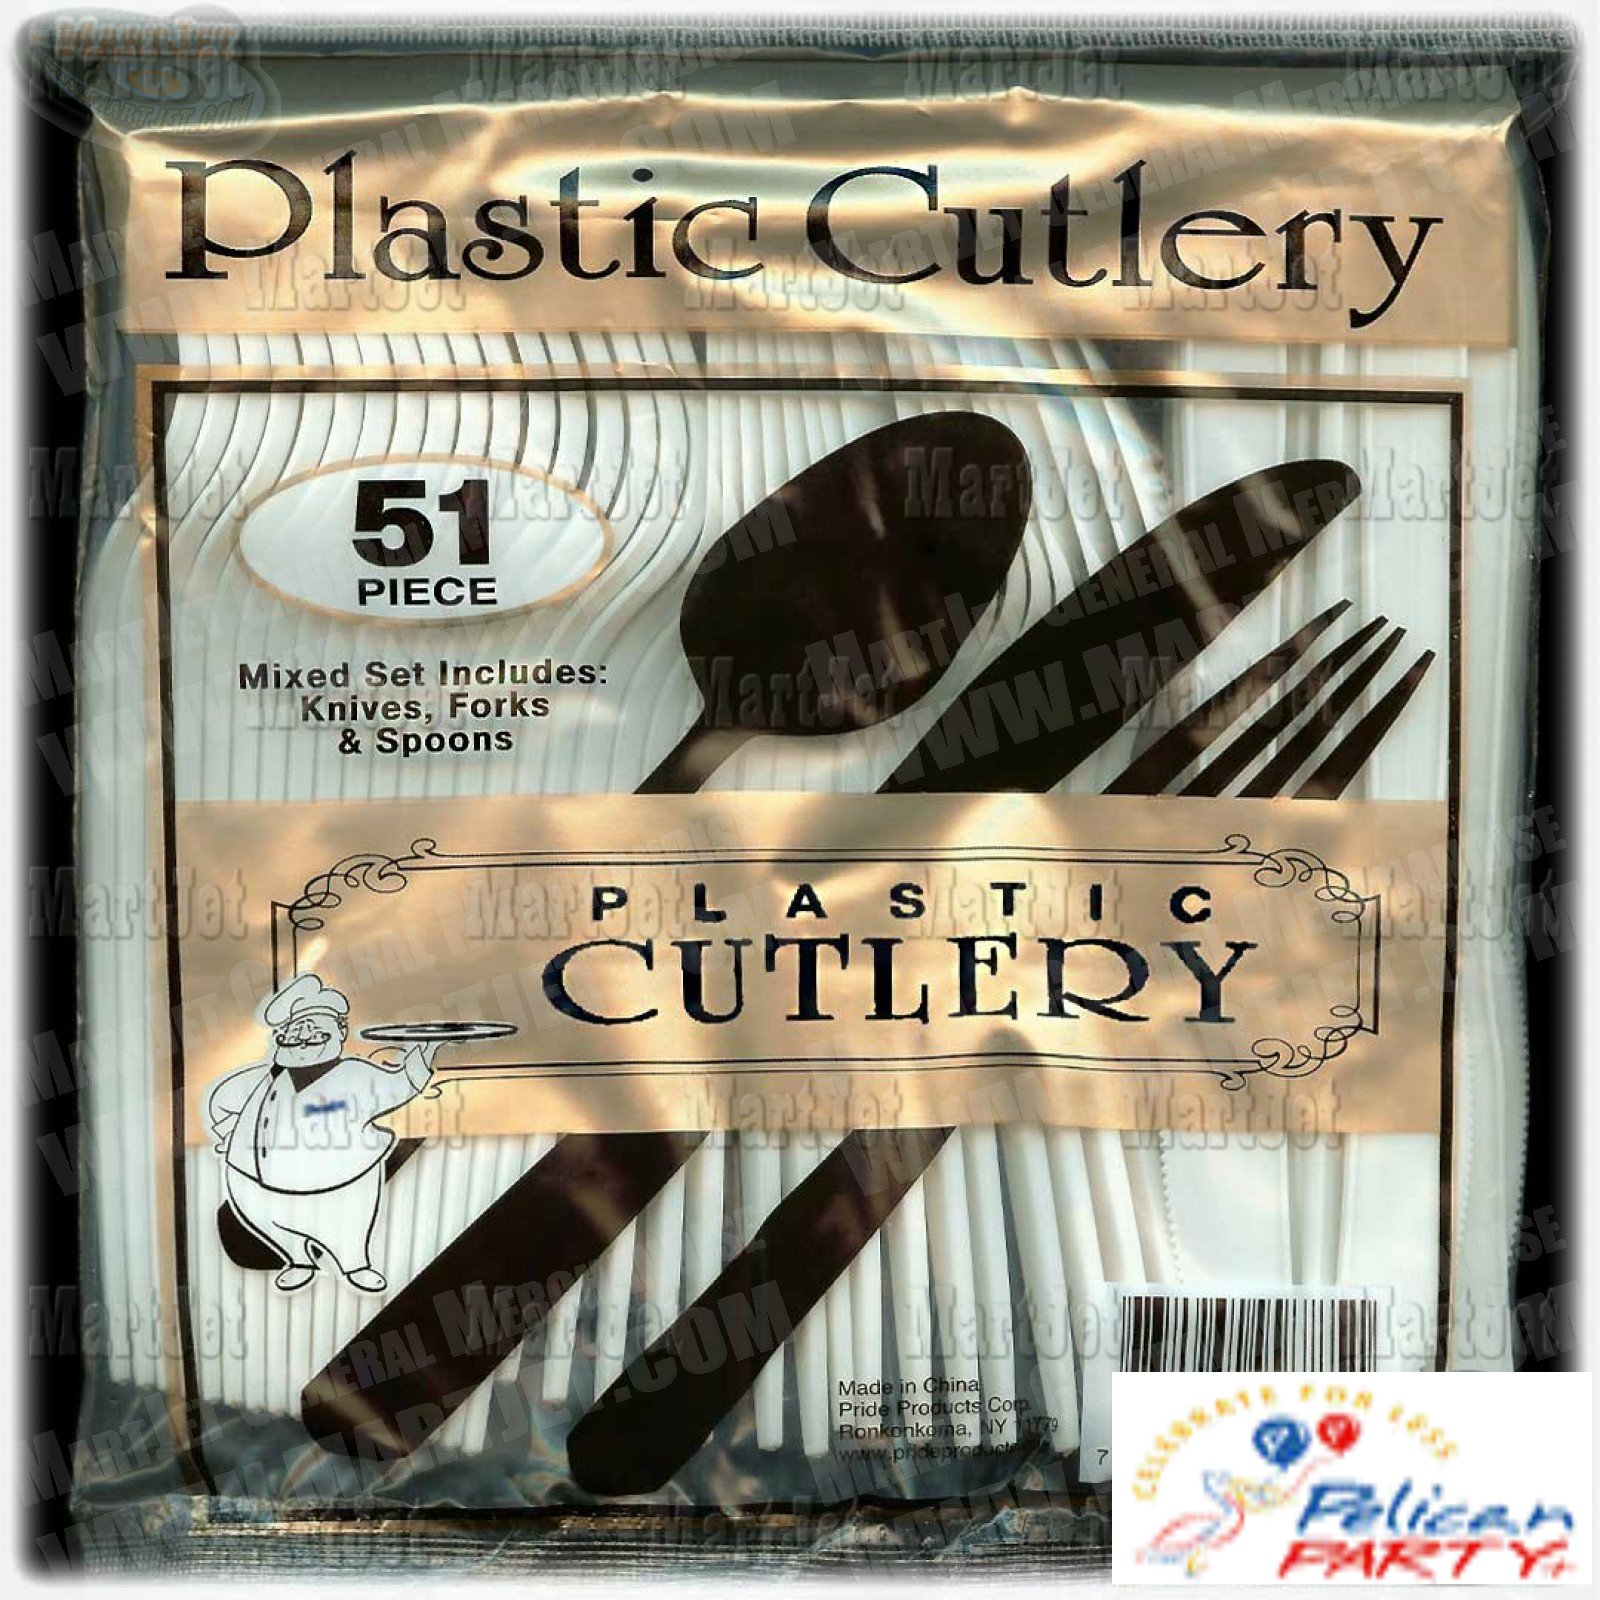 Plastic Cutlery 51 Pieces White